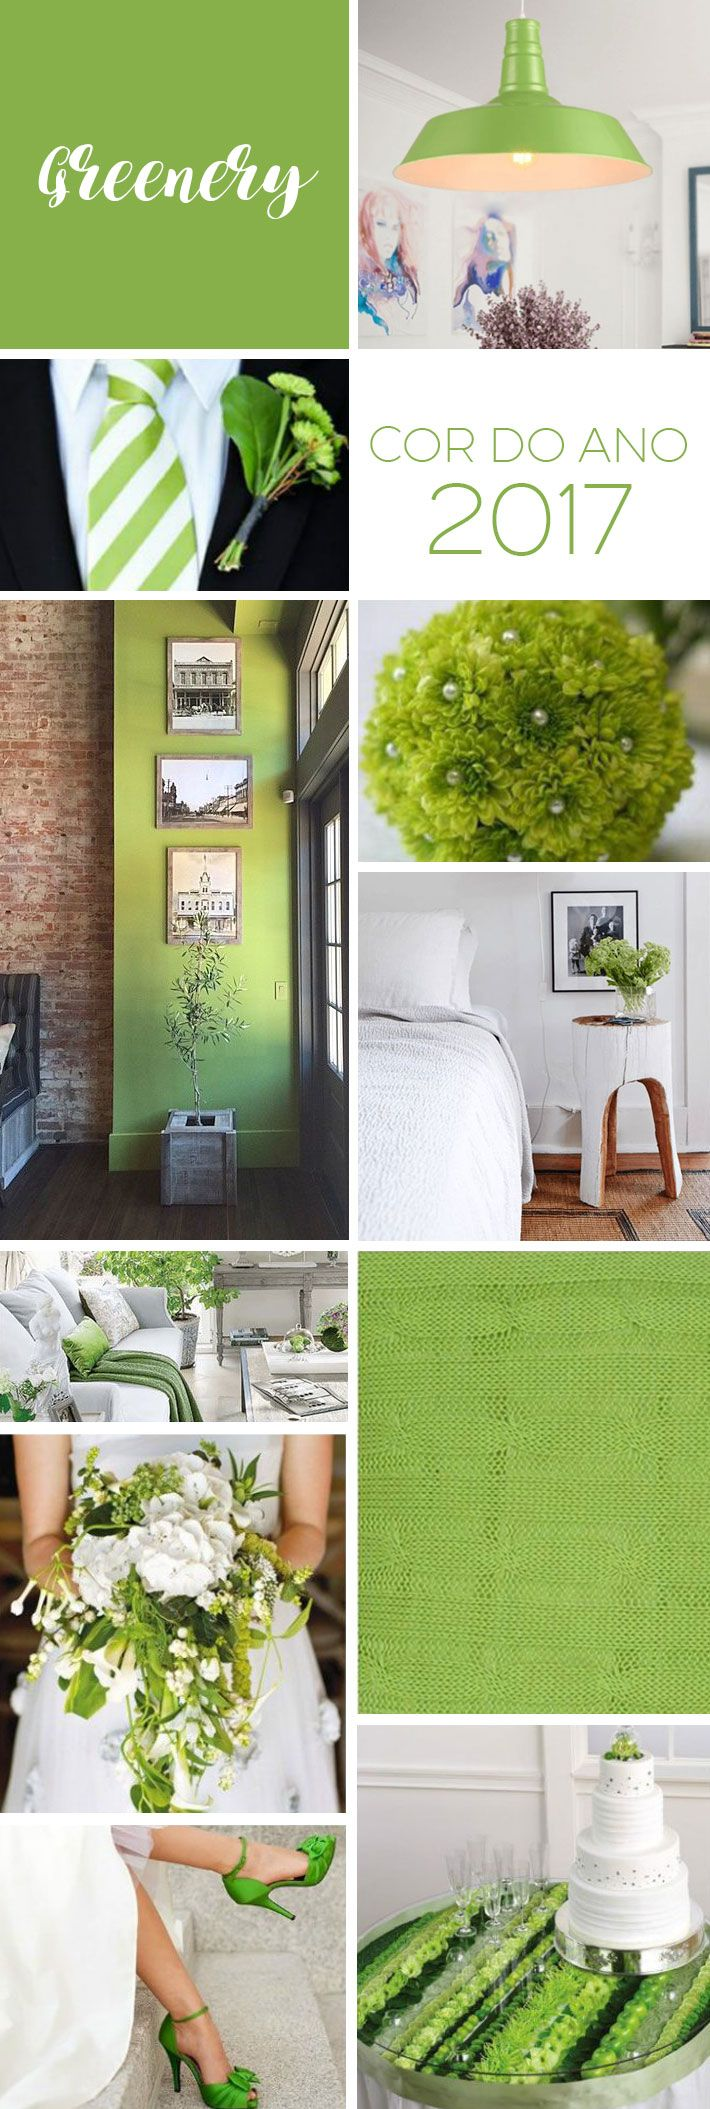 A cor do ano 2017 | Verde Greenery by Pantone http://comprandomeuape.com.br/2016/12/cor-ano-2017-verde-greenery-pantone.html